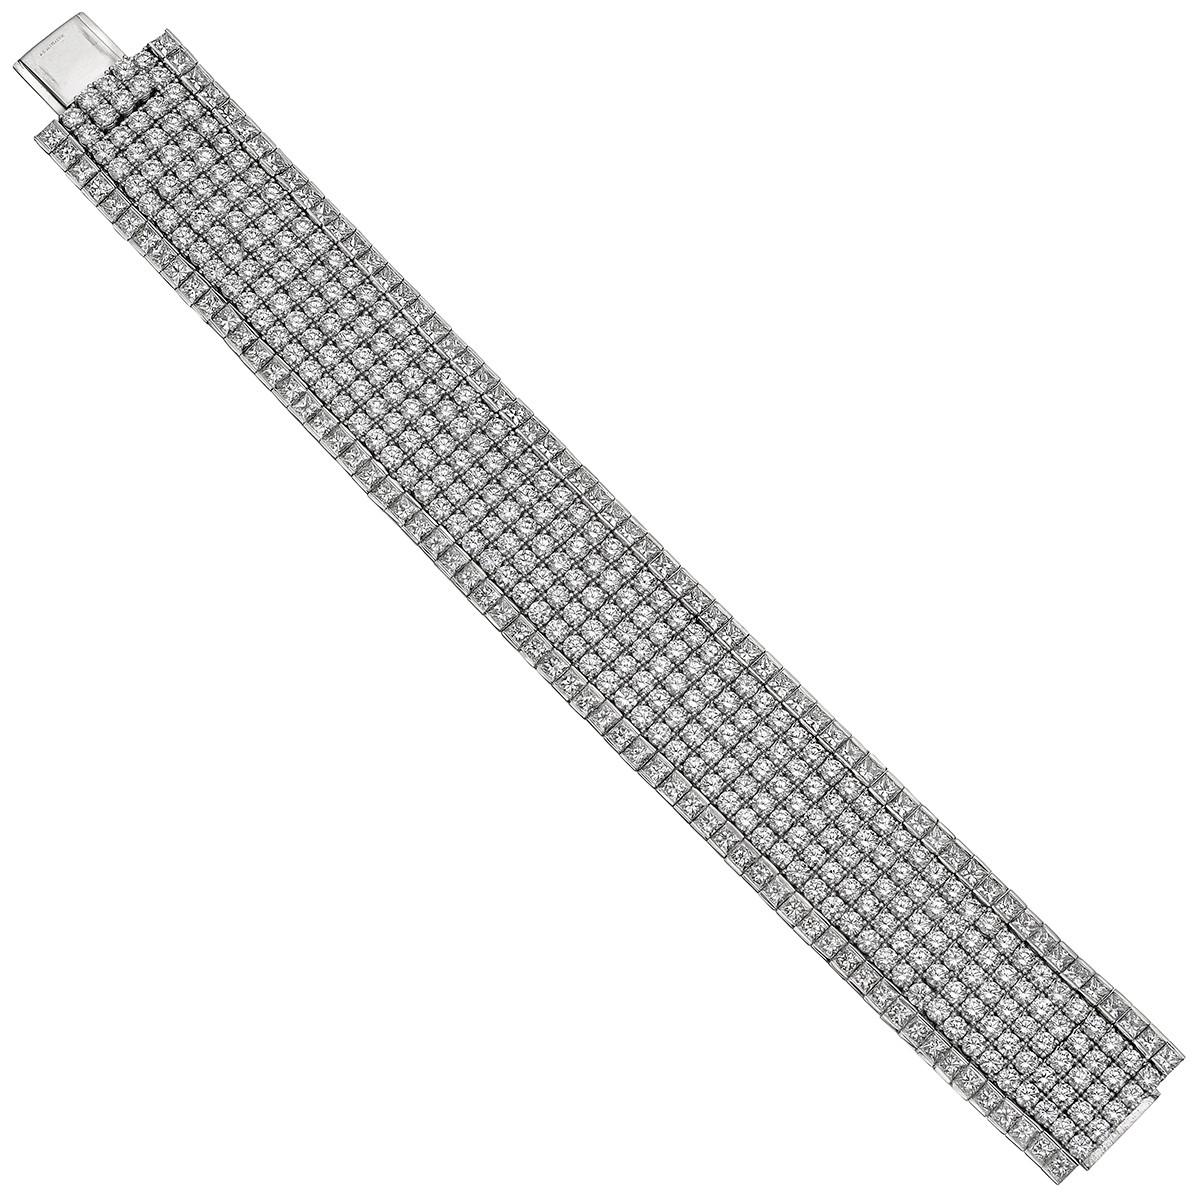 Platinum & Diamond Wide Bracelet (42.91ct tw)